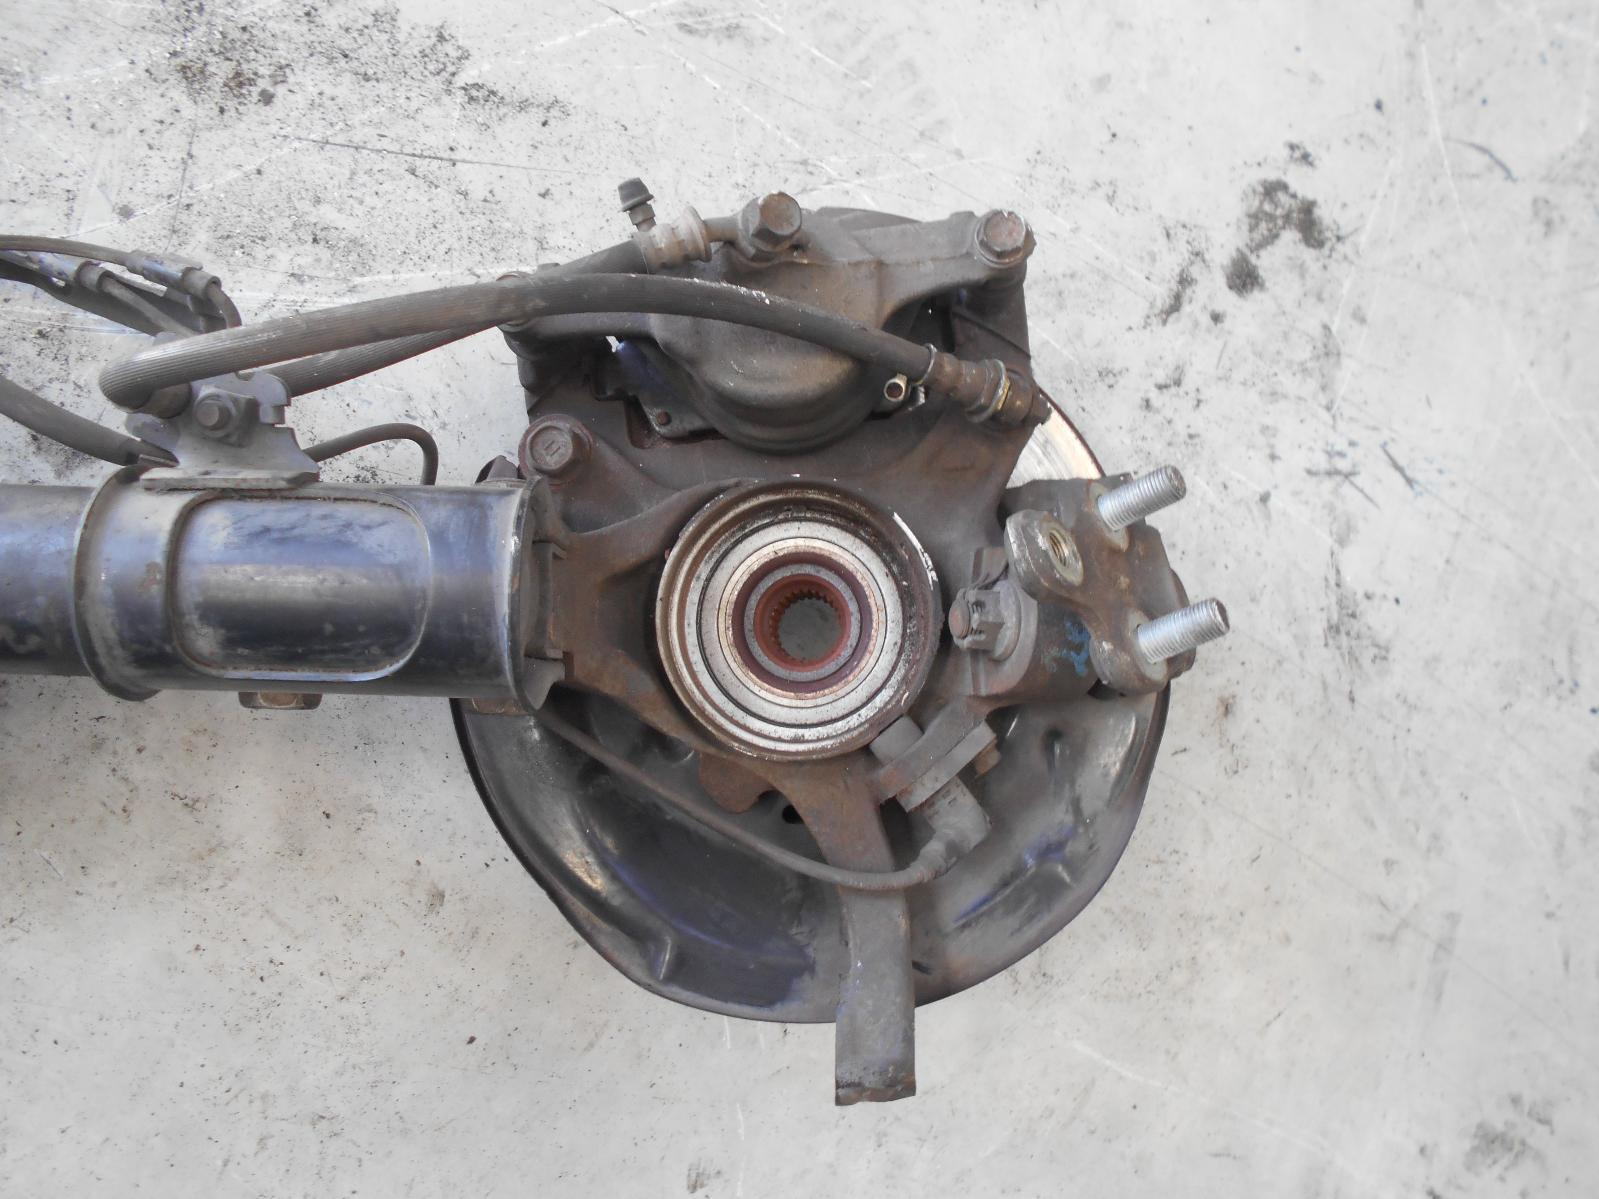 TOYOTA CAMRY, Left Front Hub Assembly, SK20, 2.2, 5S-FE, NON ABS TYPE, 08/97-08/02